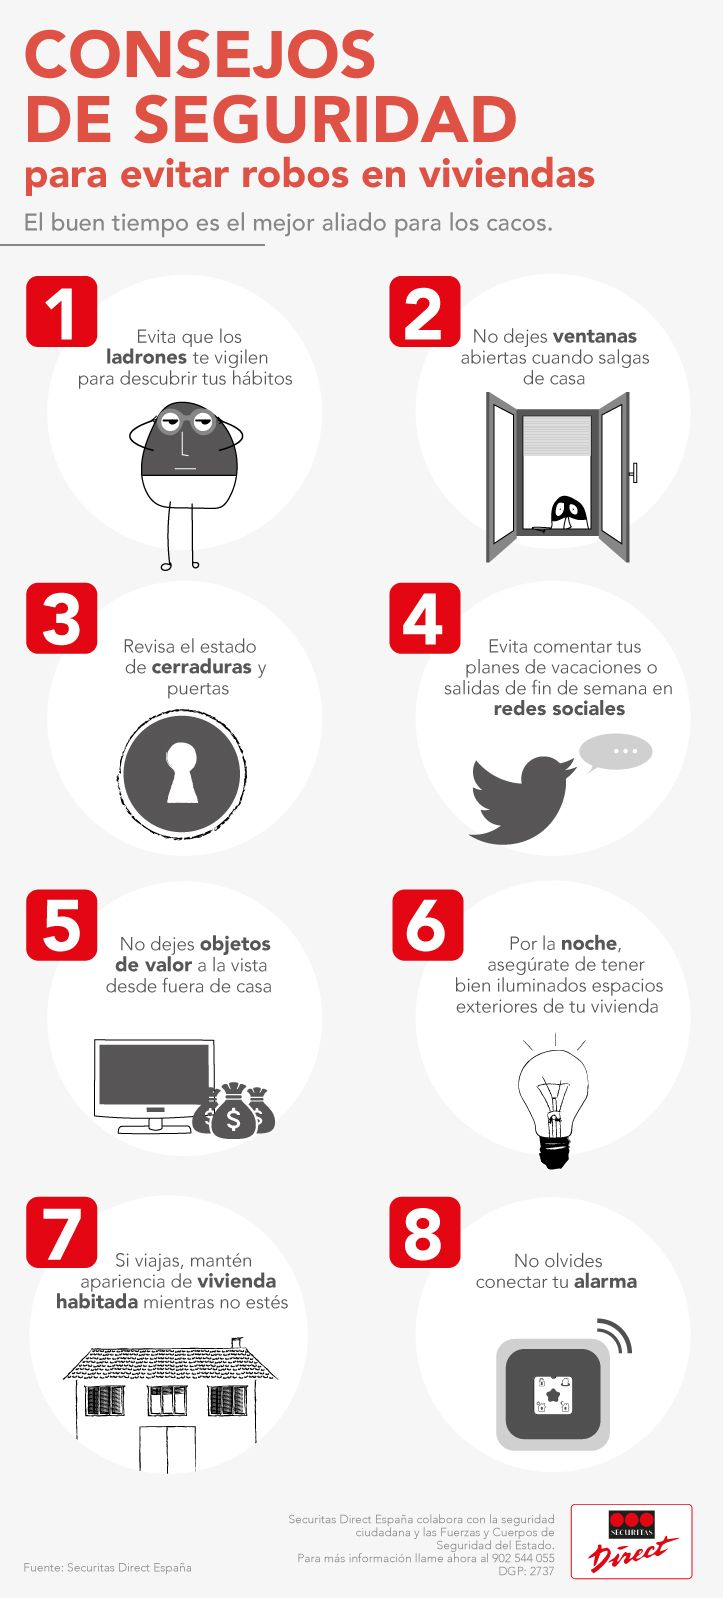 1000 images about securitas direct espa a on pinterest app animales and android - Oficinas securitas direct ...